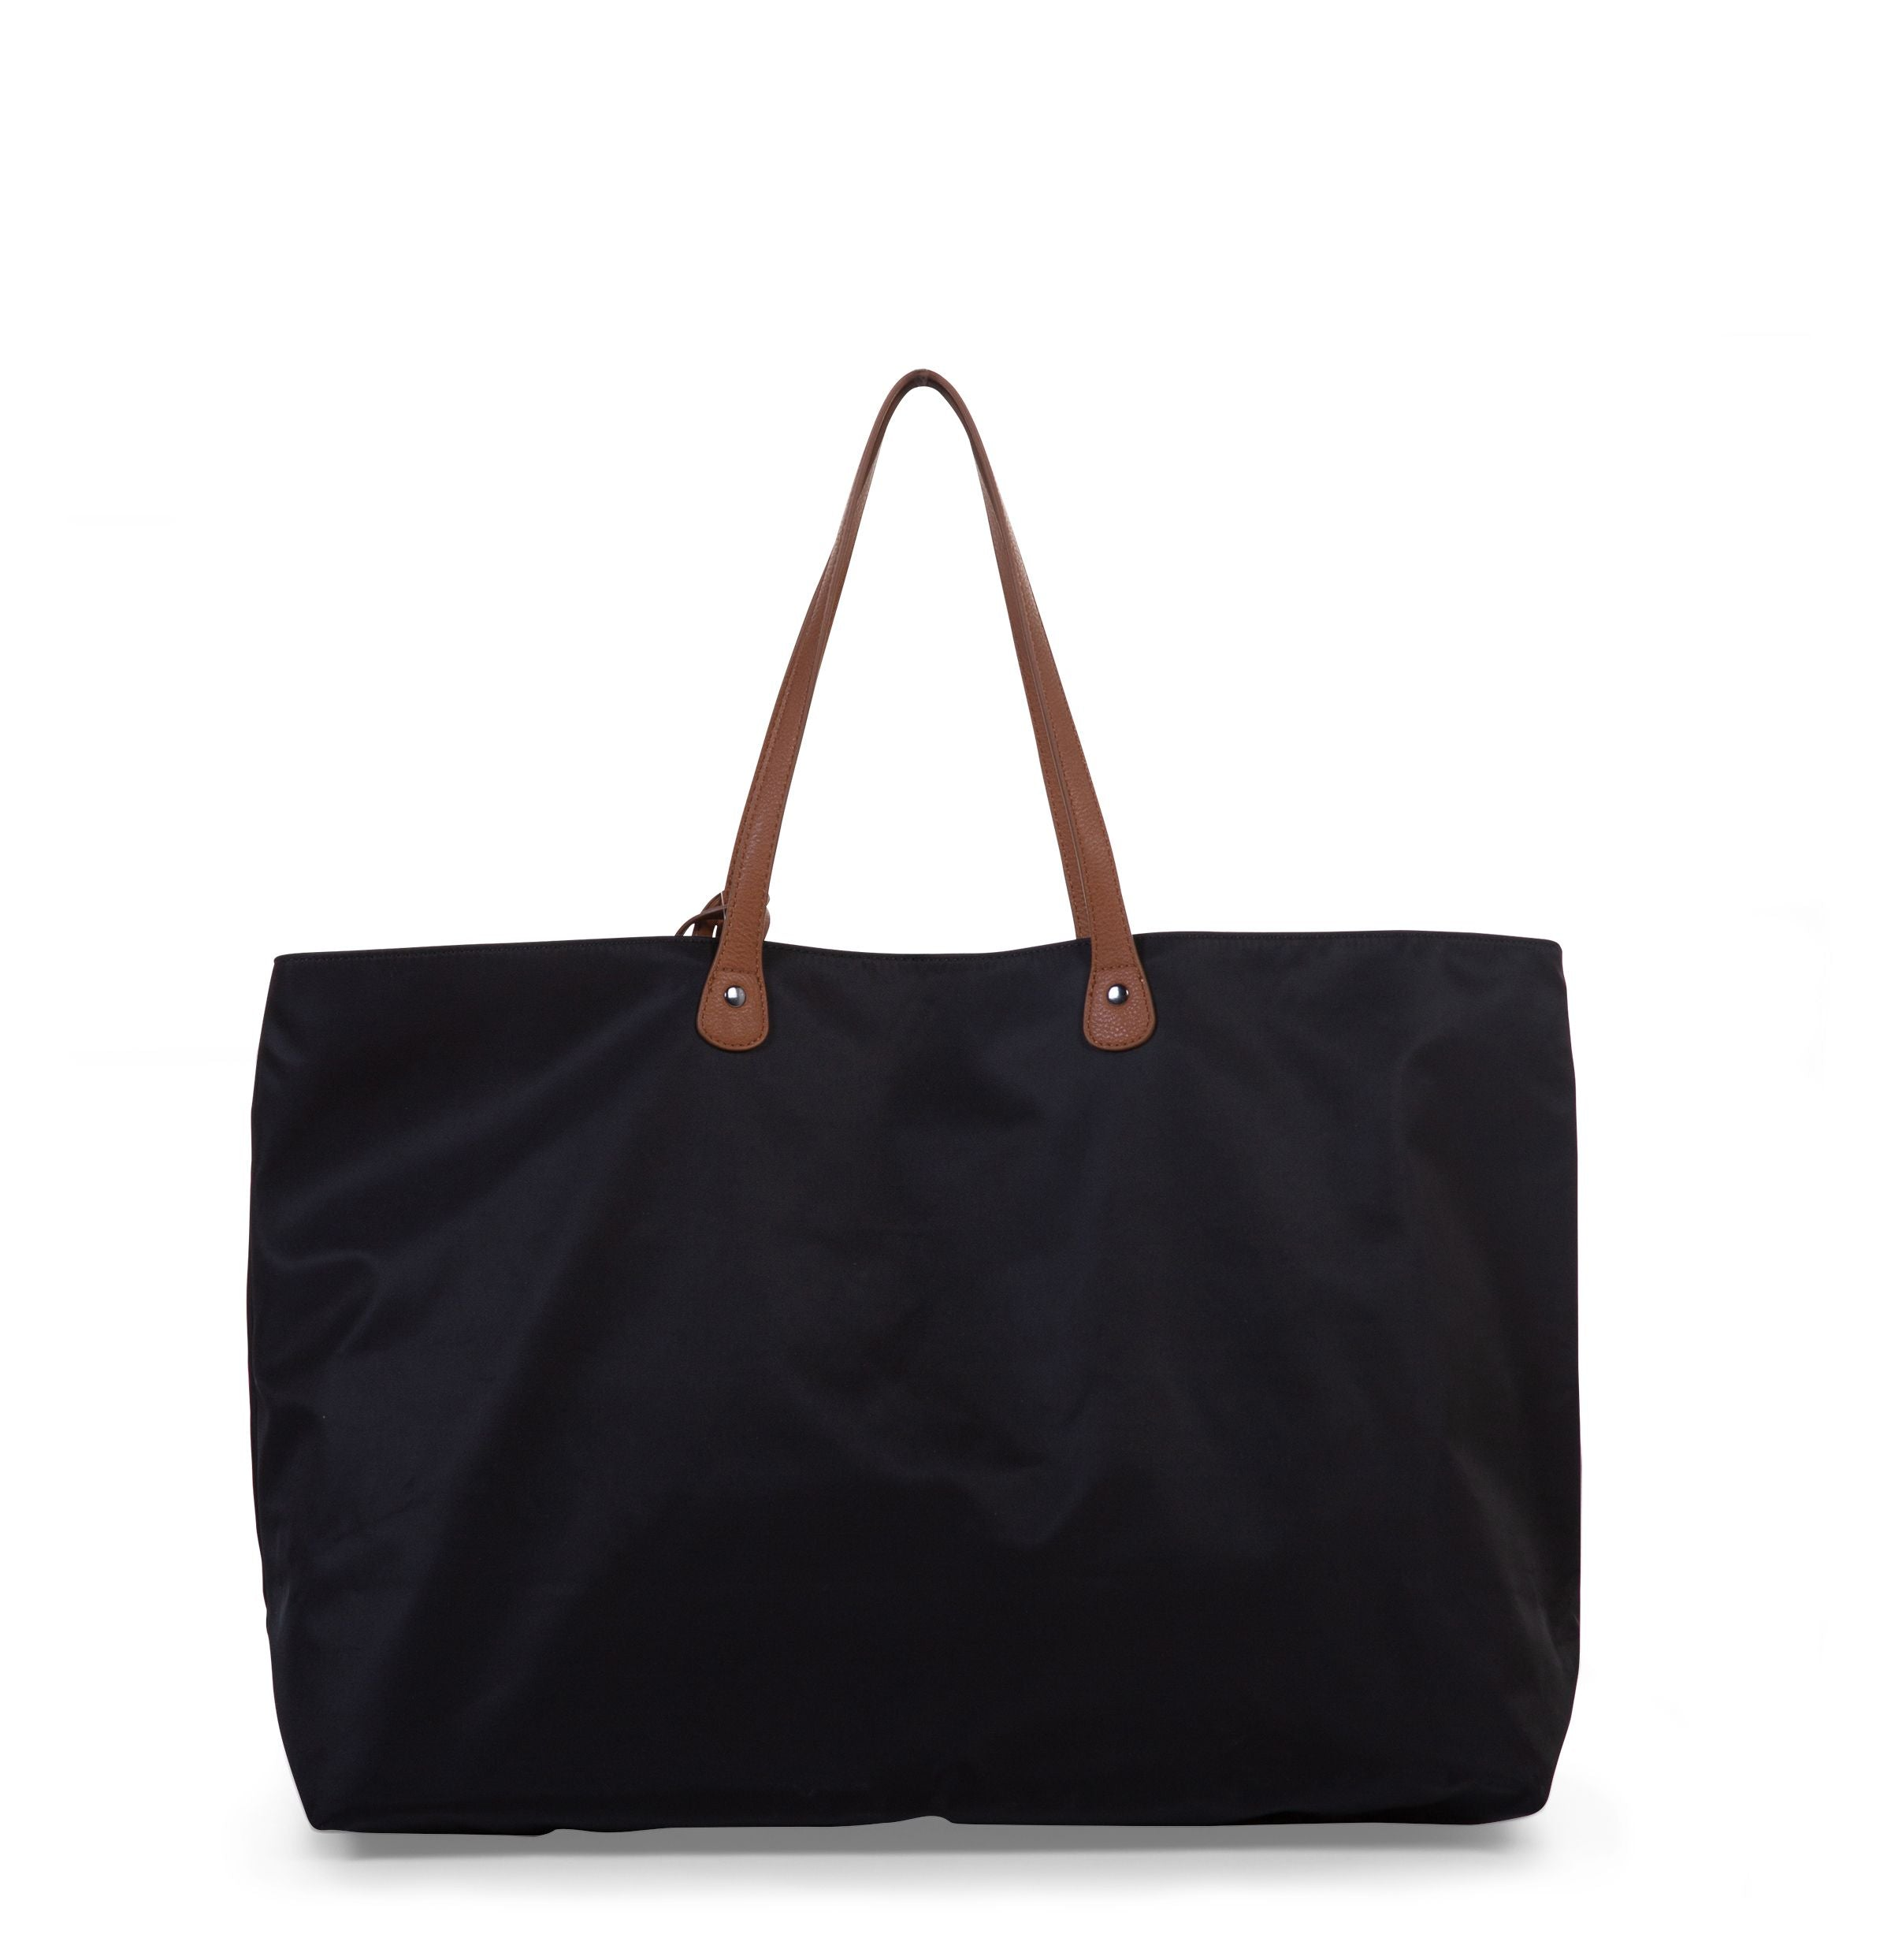 Family Bag - Large Tote - Black